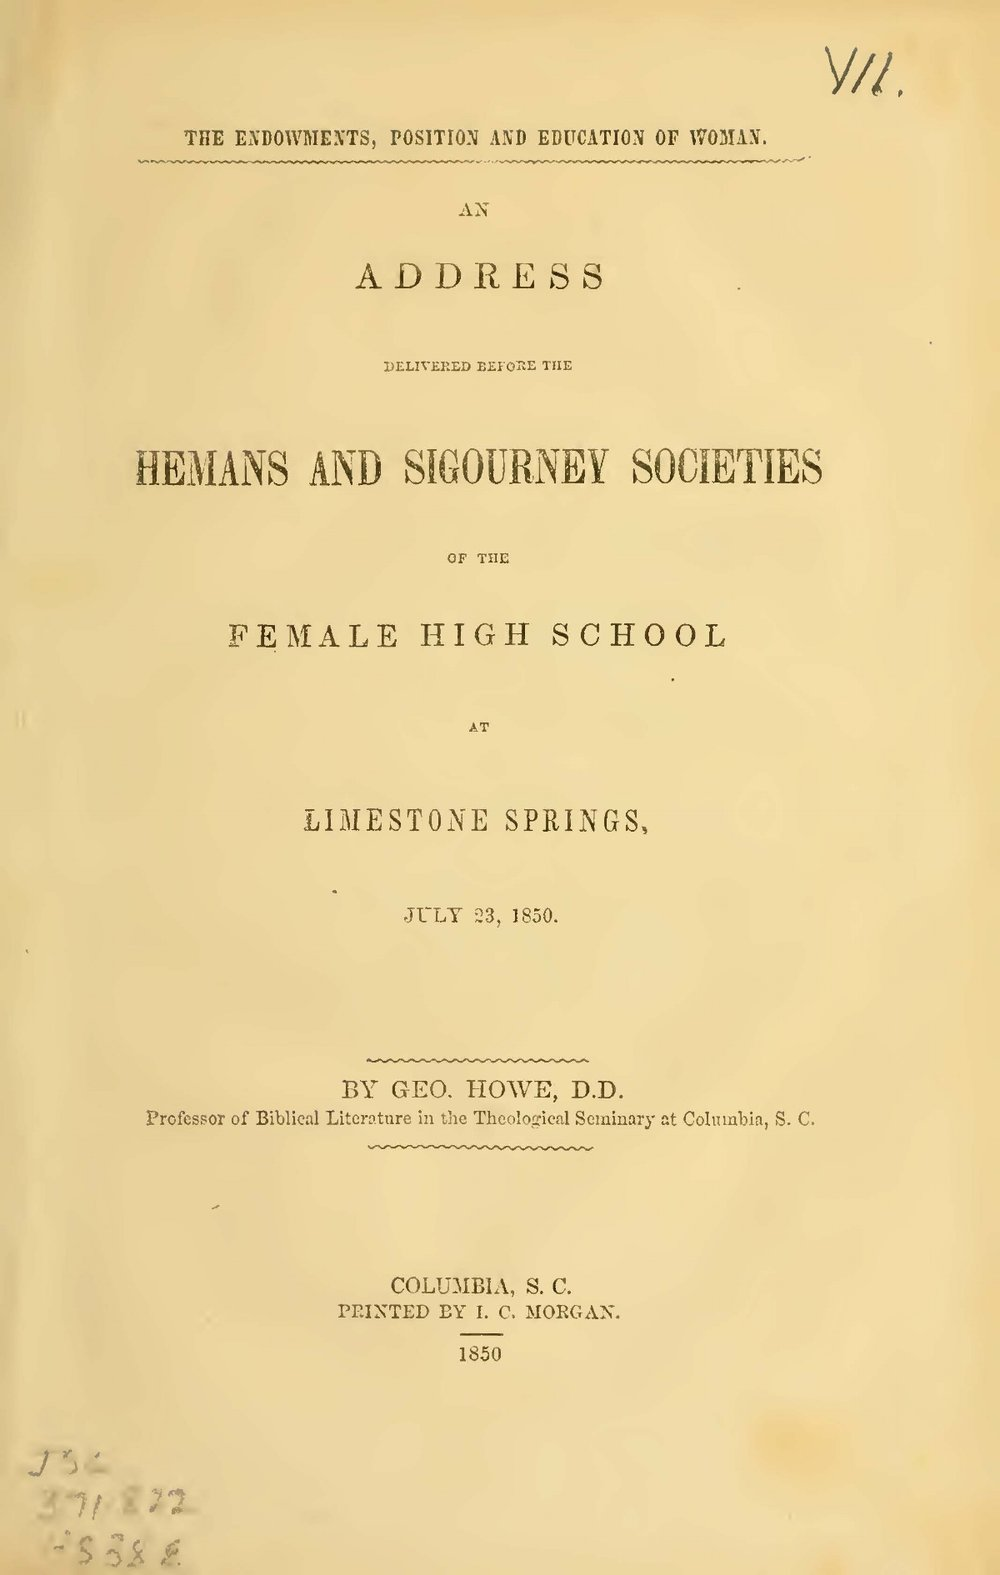 Howe, George, The Endowments, Position and Education of Woman Title Page.jpg